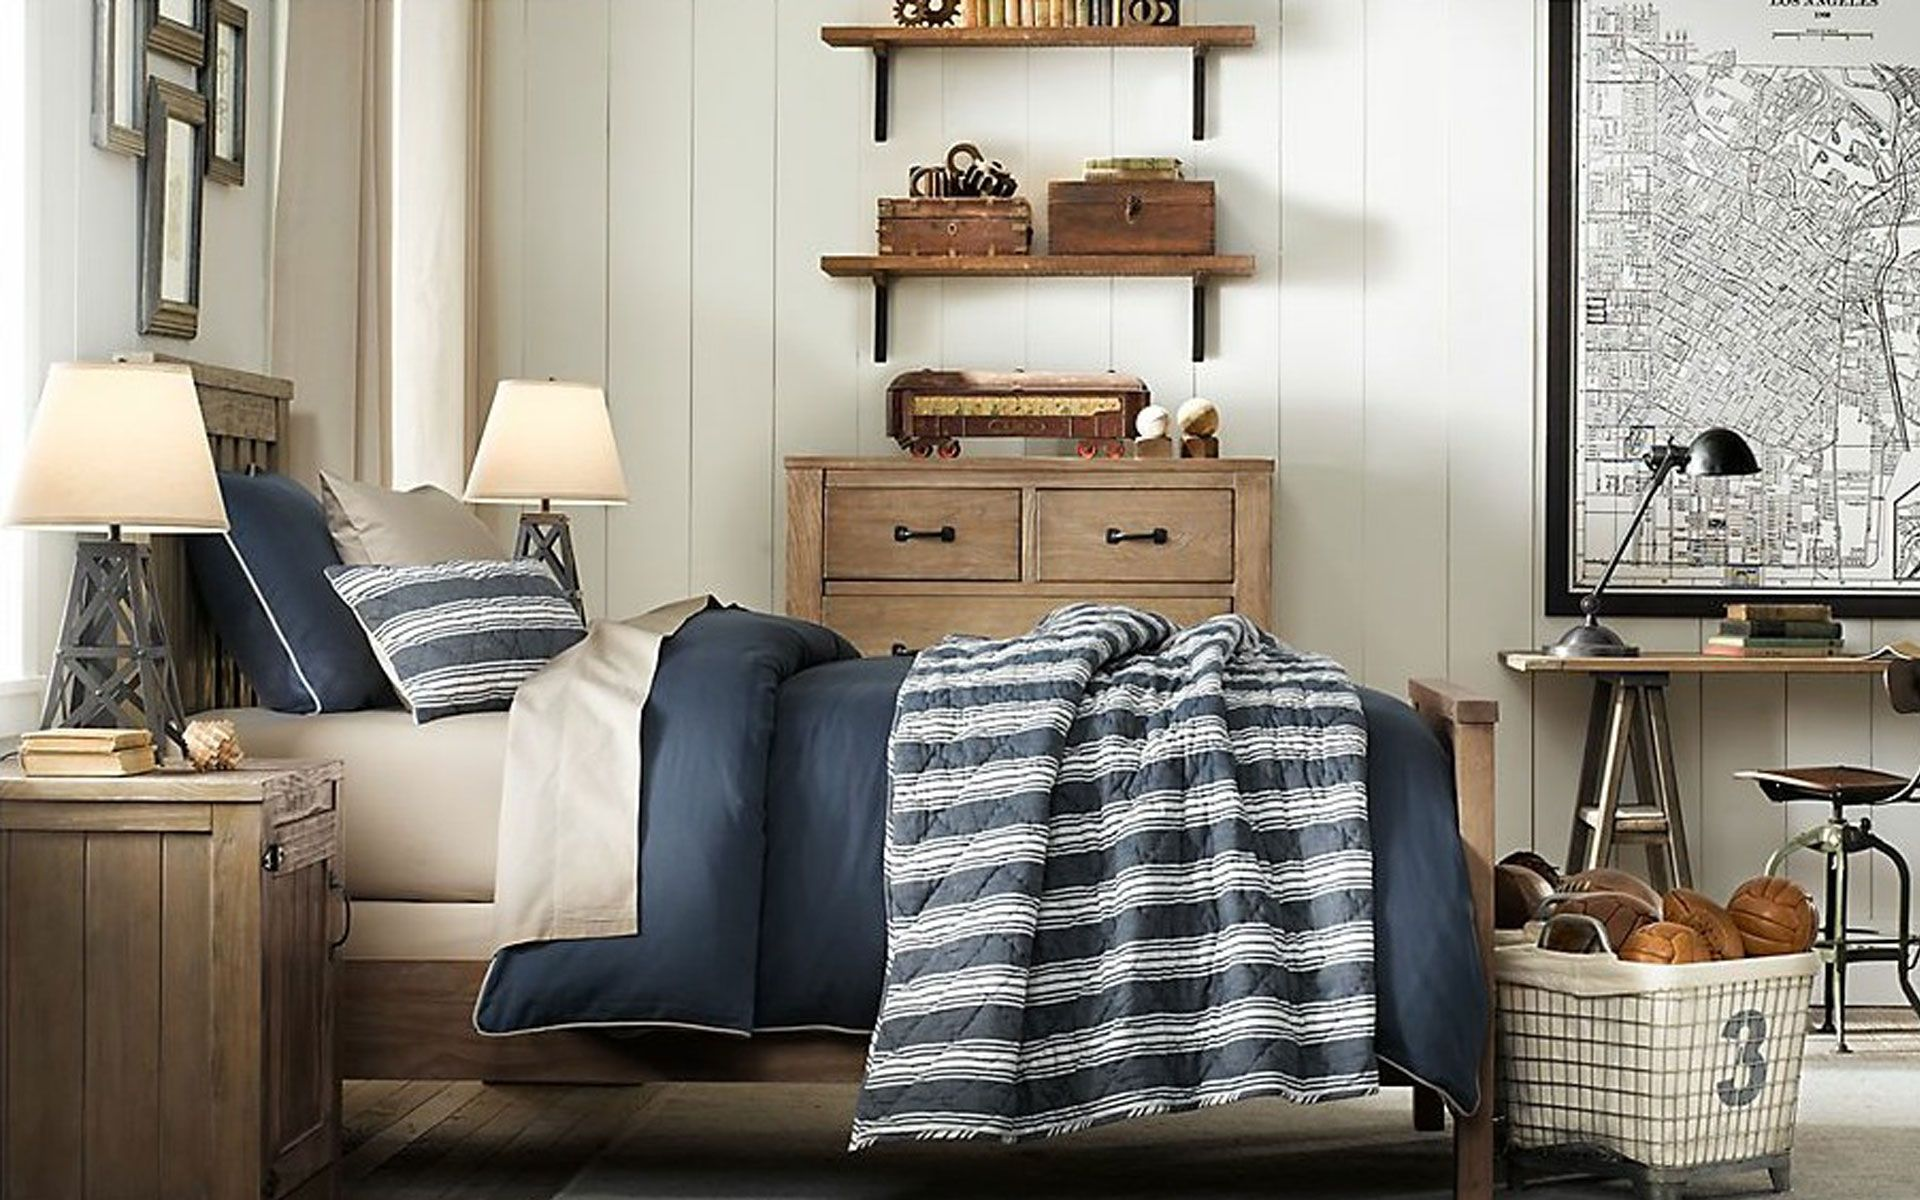 Teenager Bedroom Designs Fair Cool Floating Book Rack Ideas And Surprising Drawers Cbinet And Inspiration Design